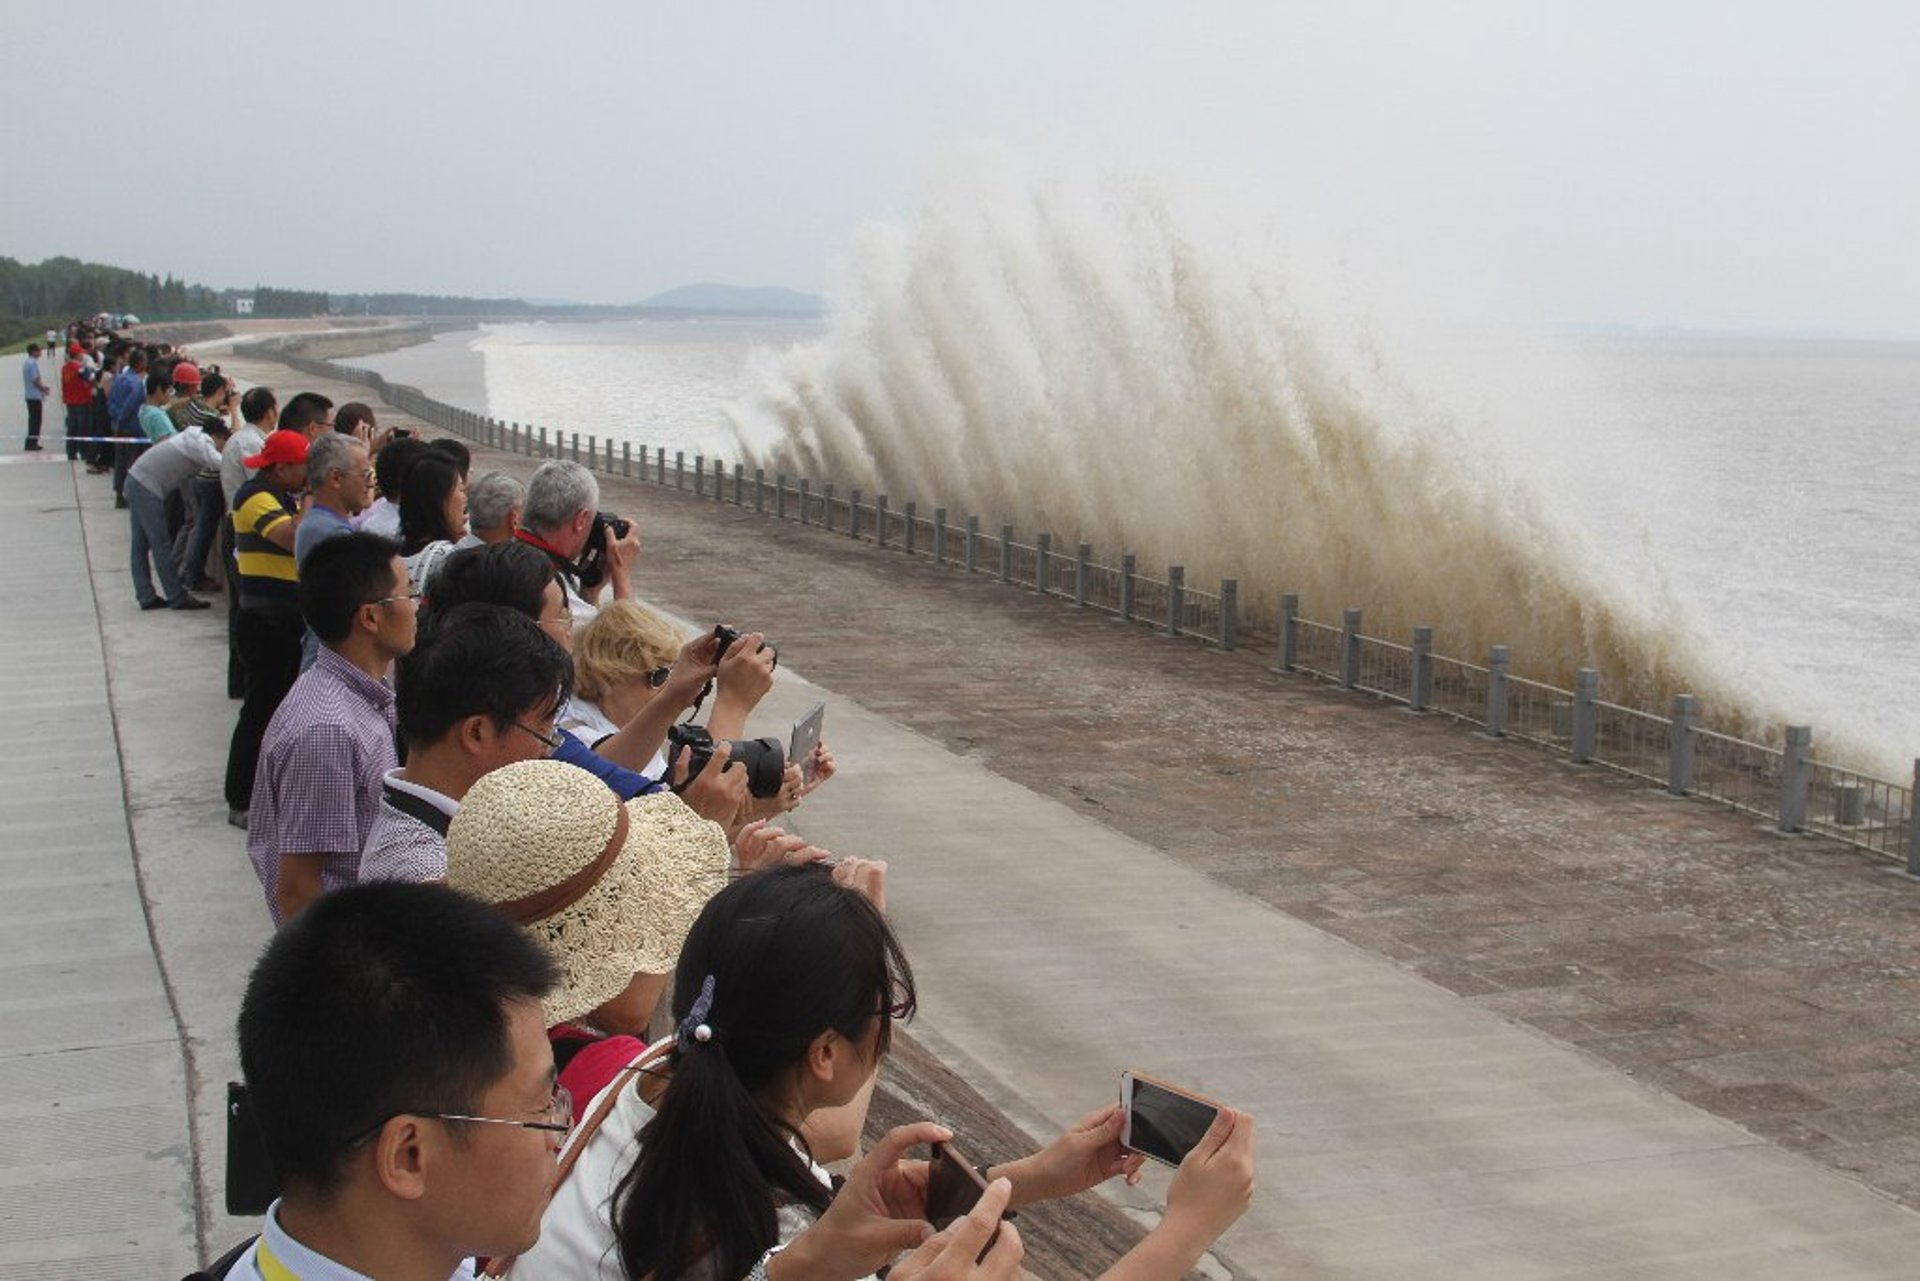 Qiantang River Tidal Bore in China 2019 - Best Time